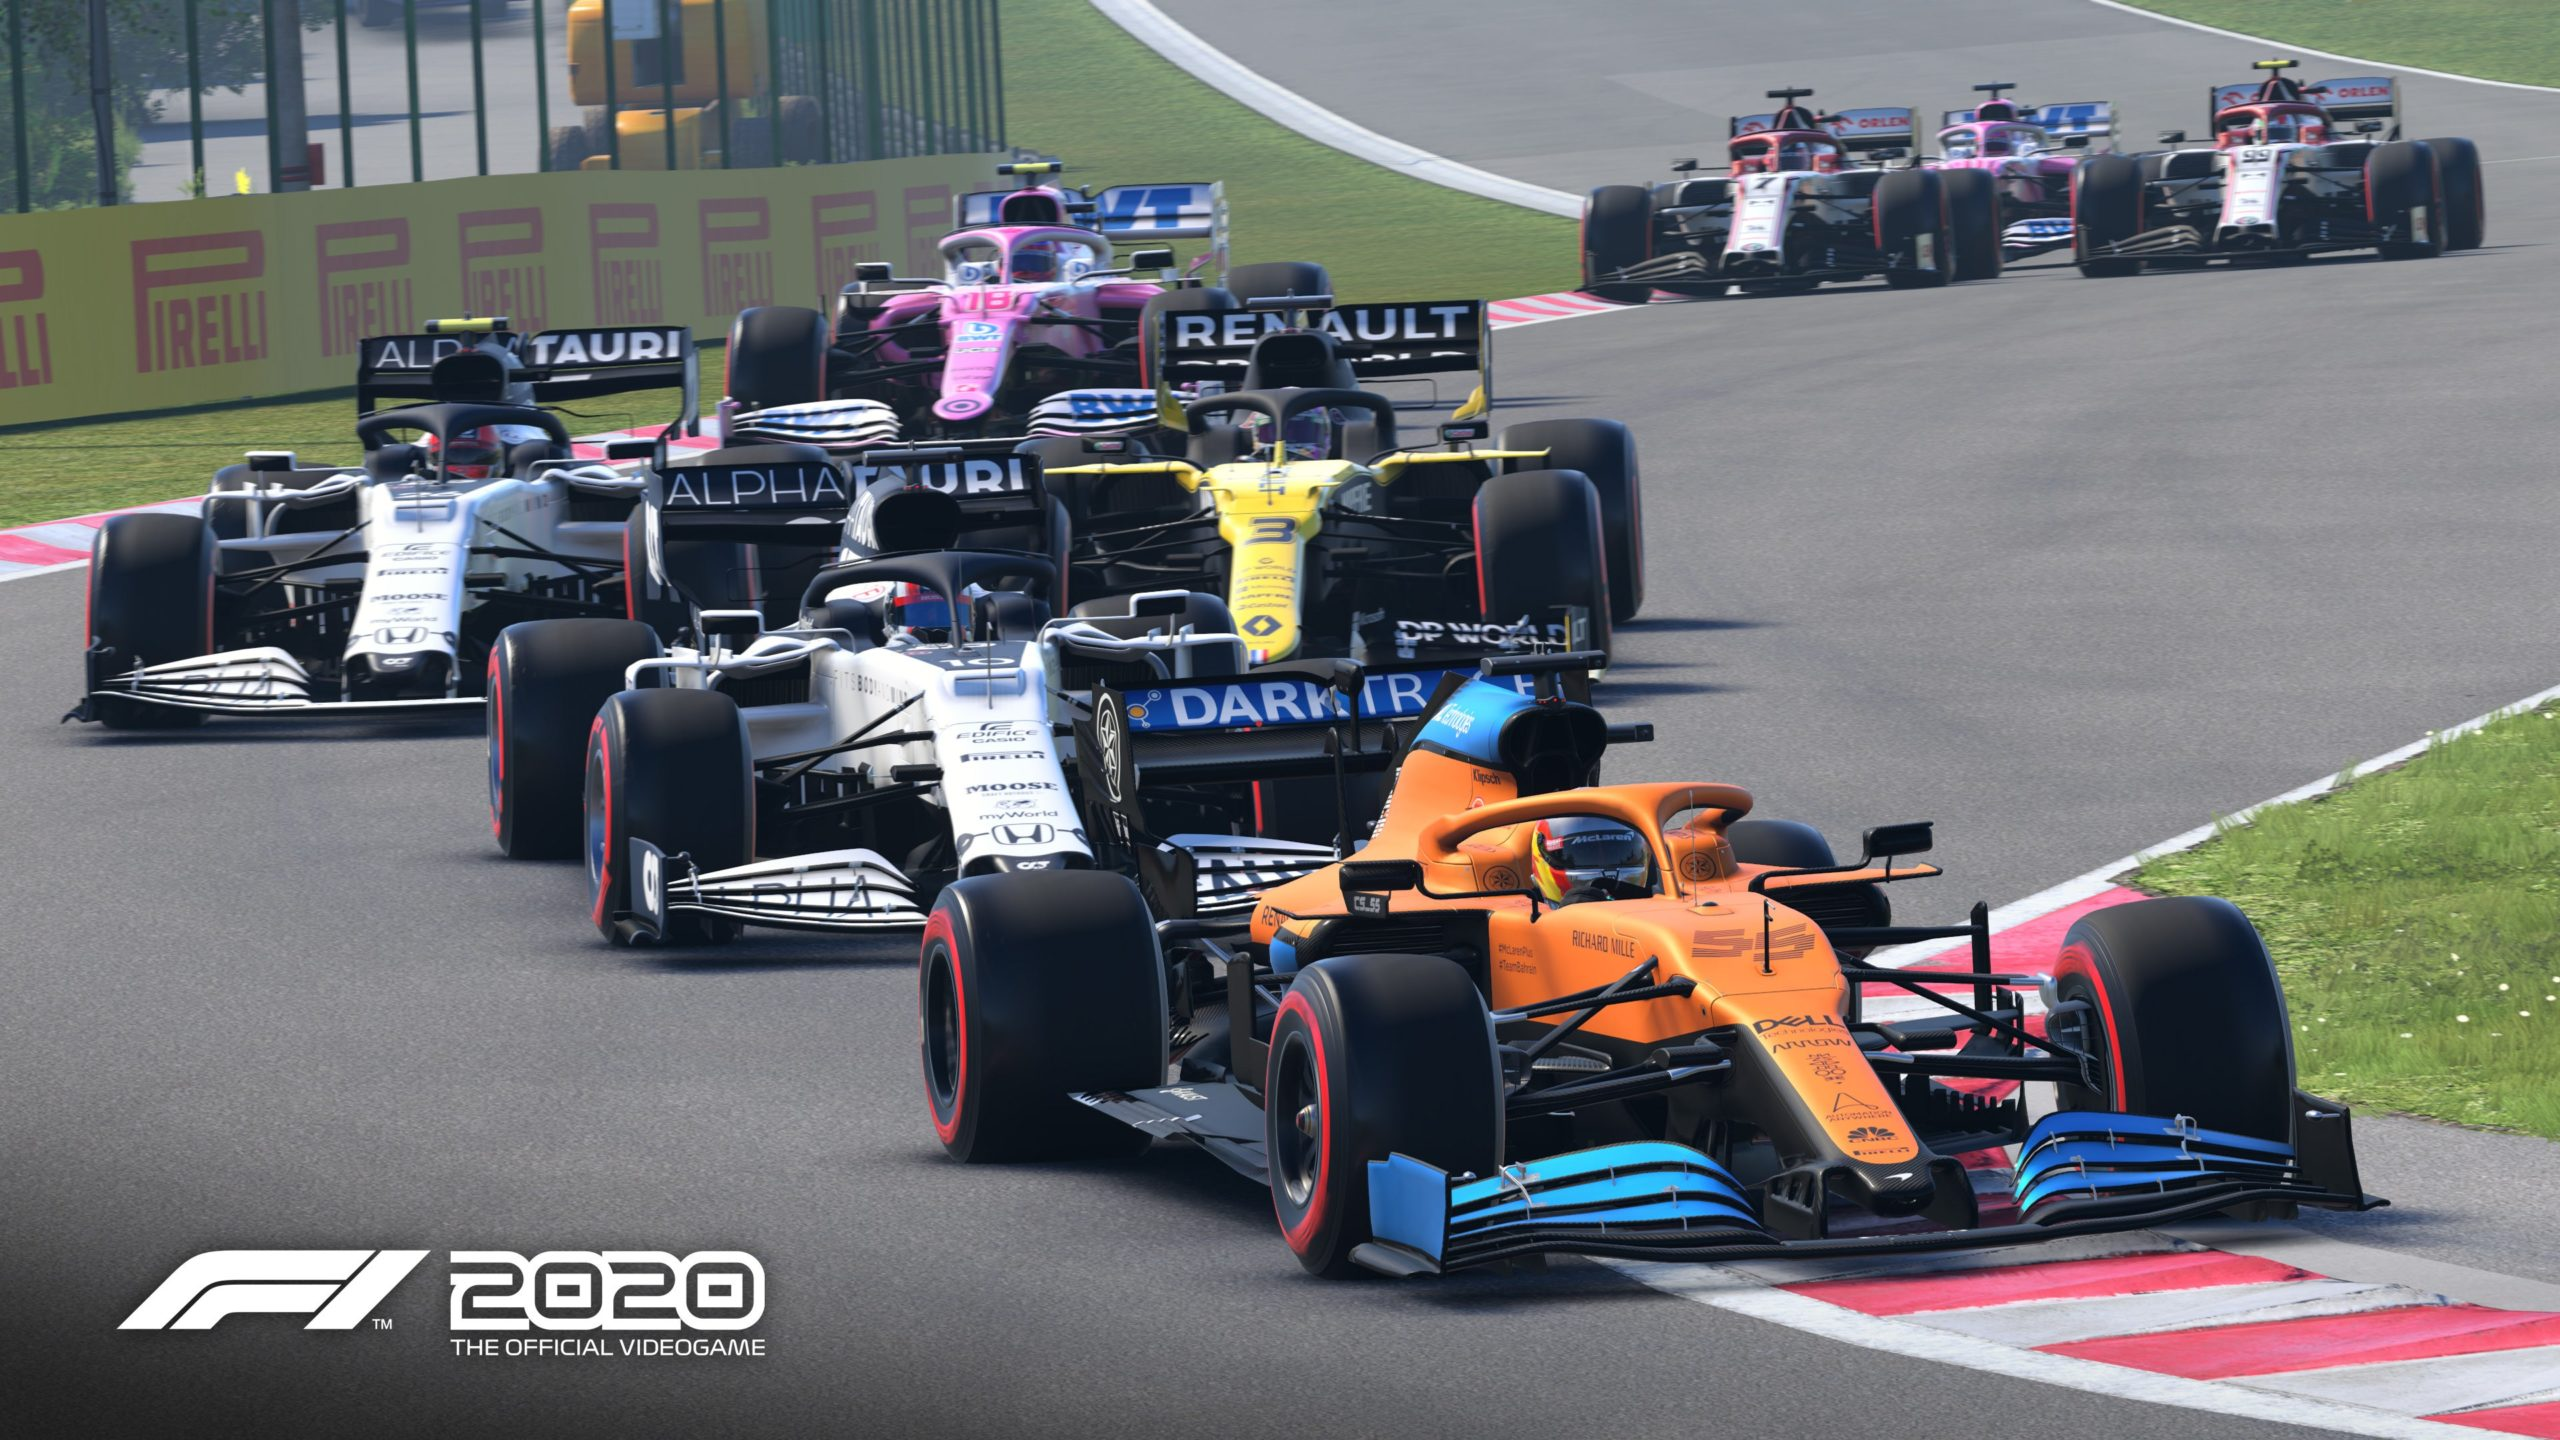 F1_2020_Hungary_Screen_13_4K-scaled F1 2020 – Plenty of New Previews